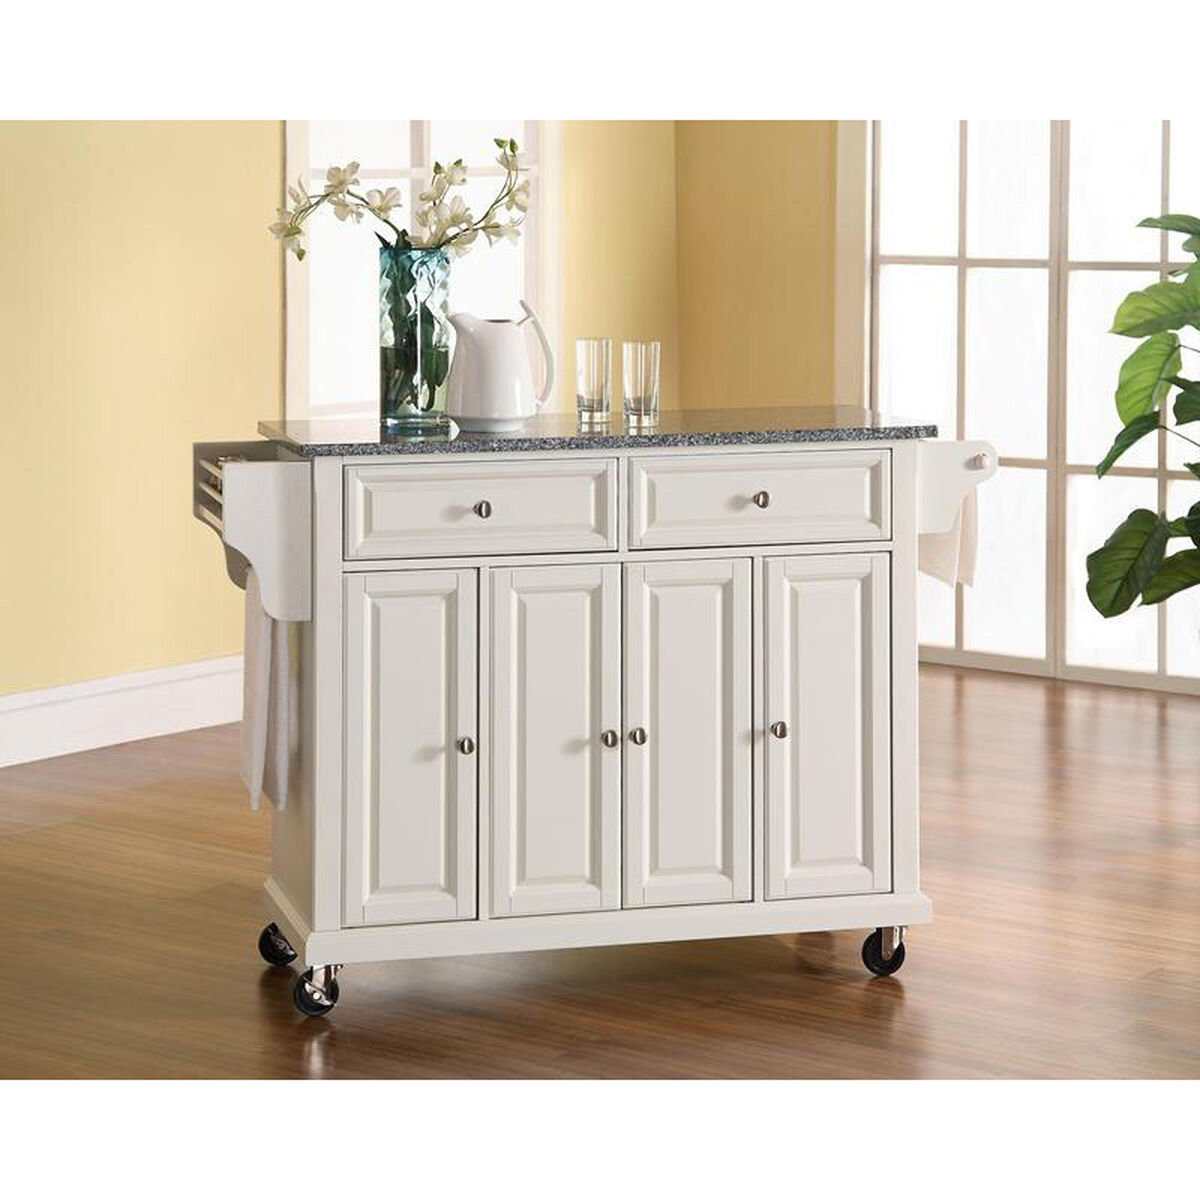 kitchen island cart white. Our Solid Granite Top Kitchen Island Cart With Cabinets - White Finish  Is On Sale Now Kitchen Island Cart White H